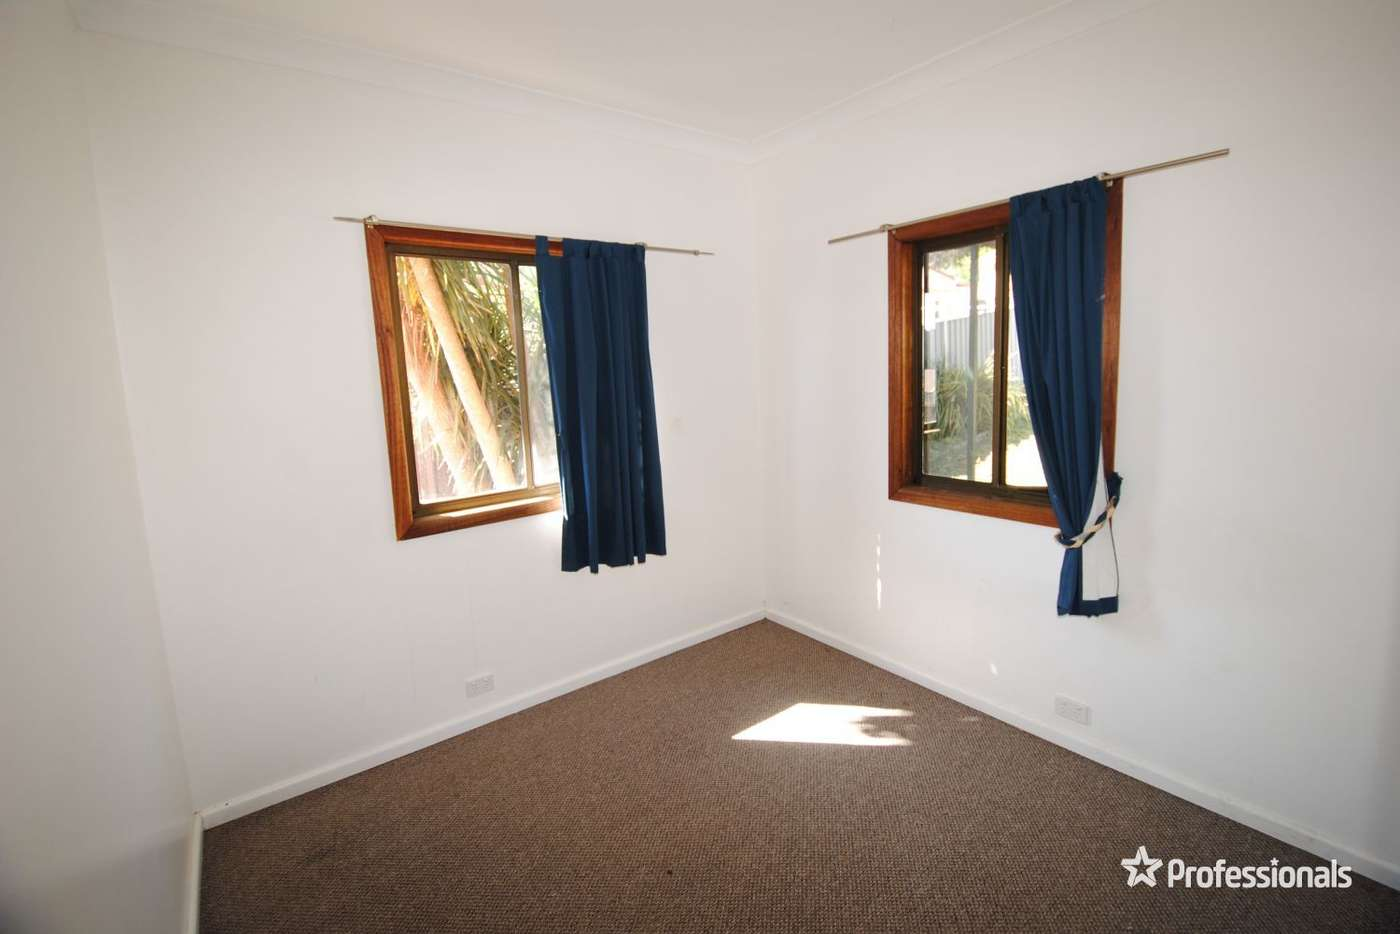 Sixth view of Homely house listing, 19 Third Street, Lithgow NSW 2790